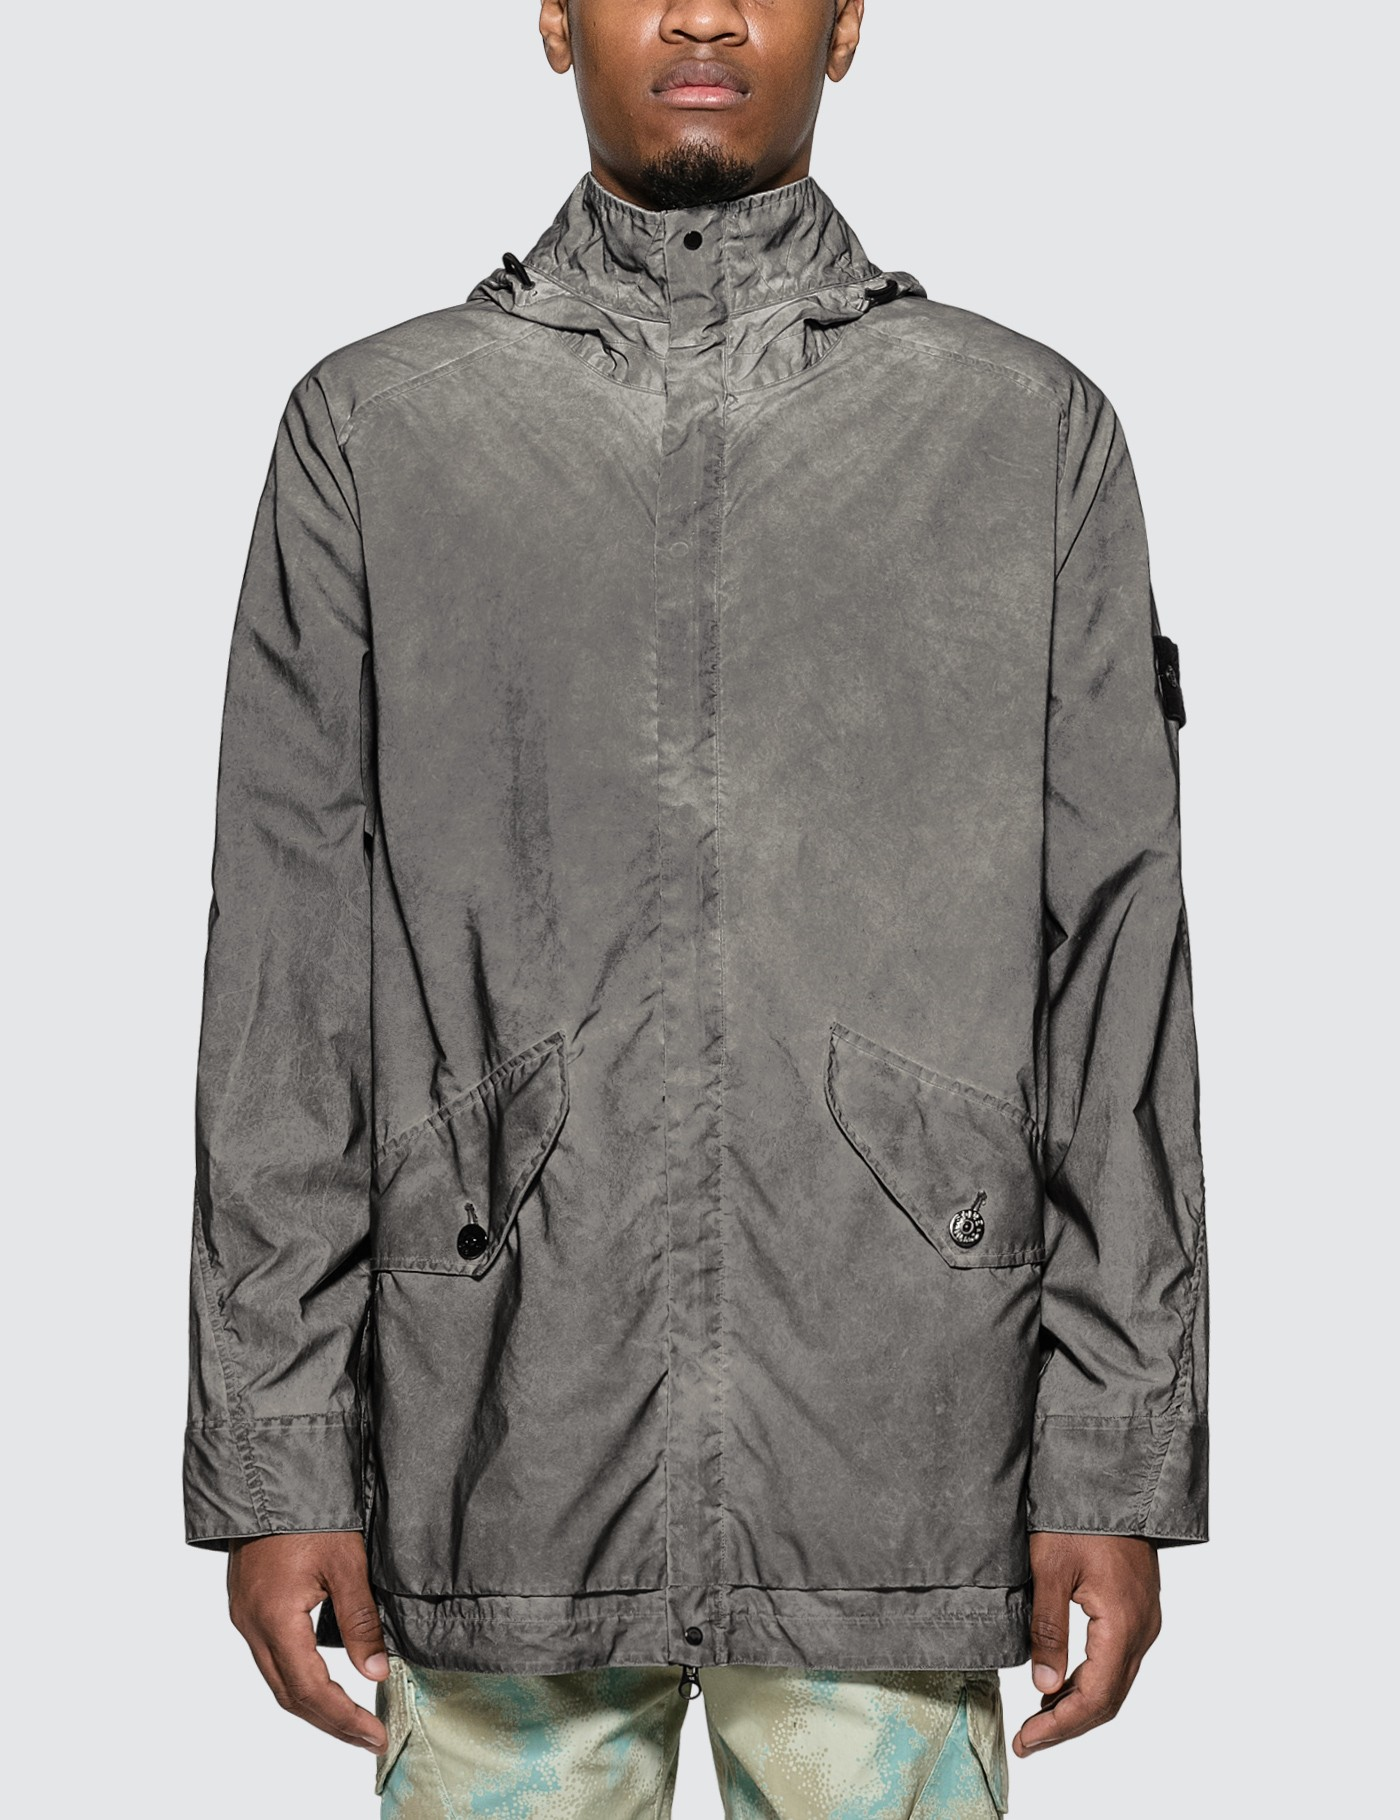 Plated Reflective Jacket